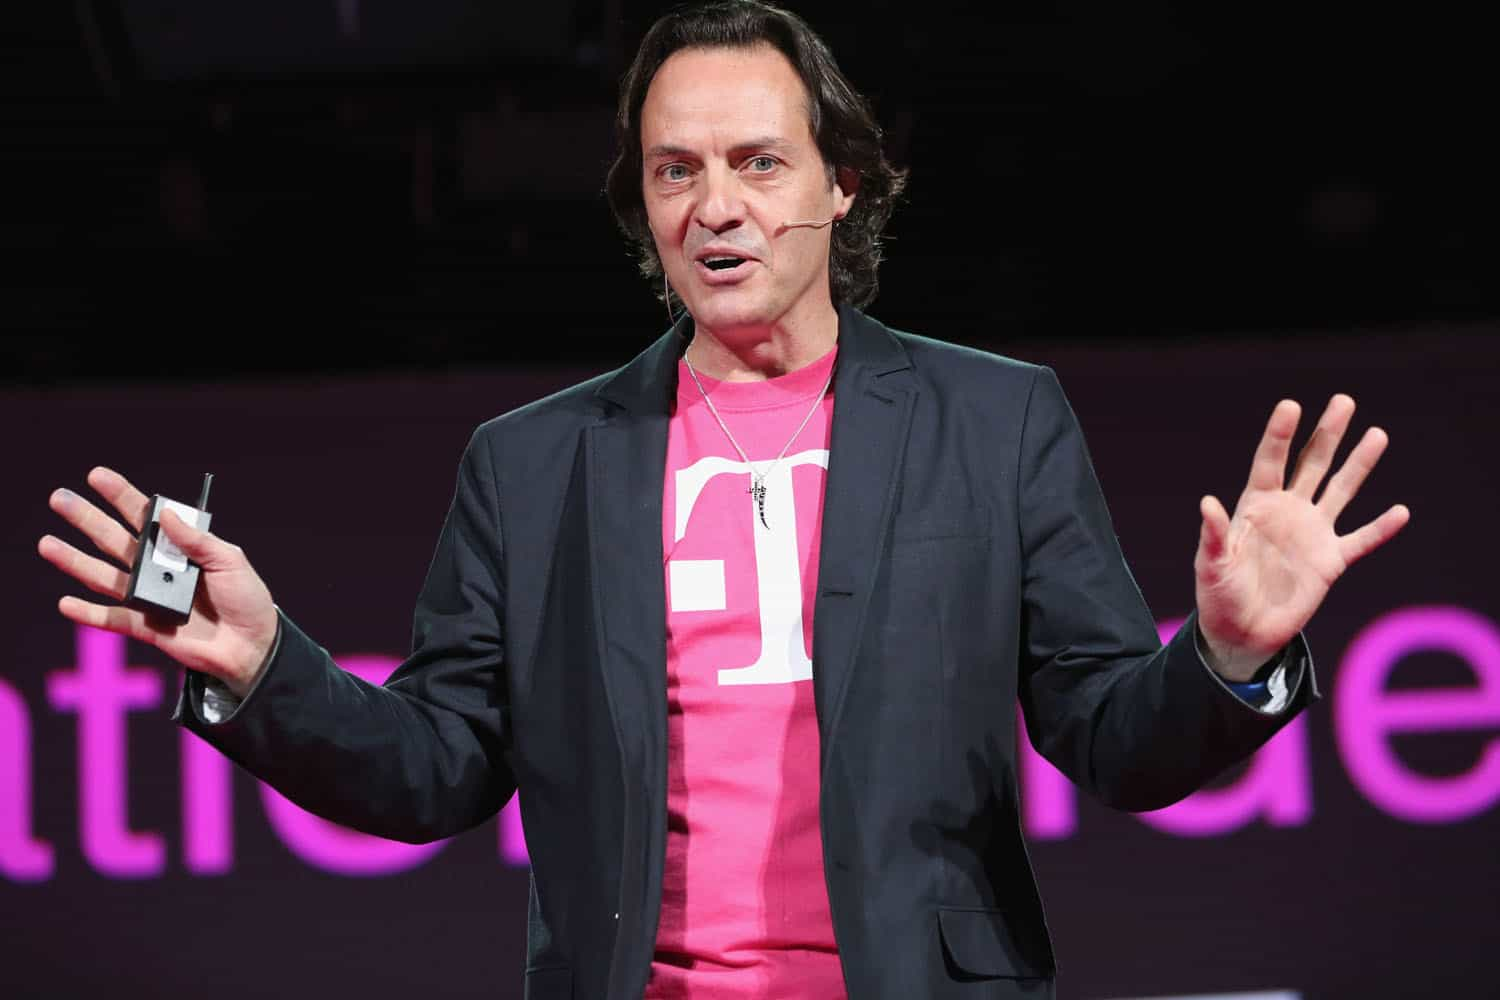 effective leader emotional intelligence John Legere